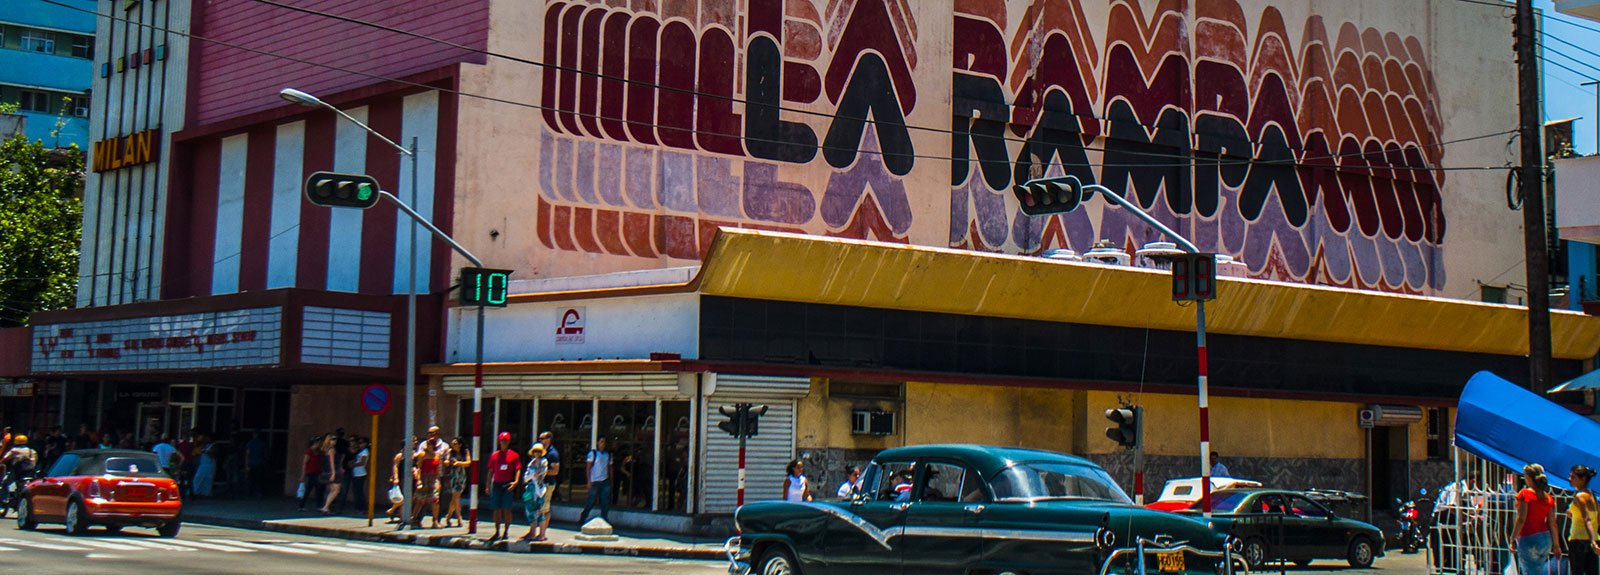 Black old car passing in front of La Rampa